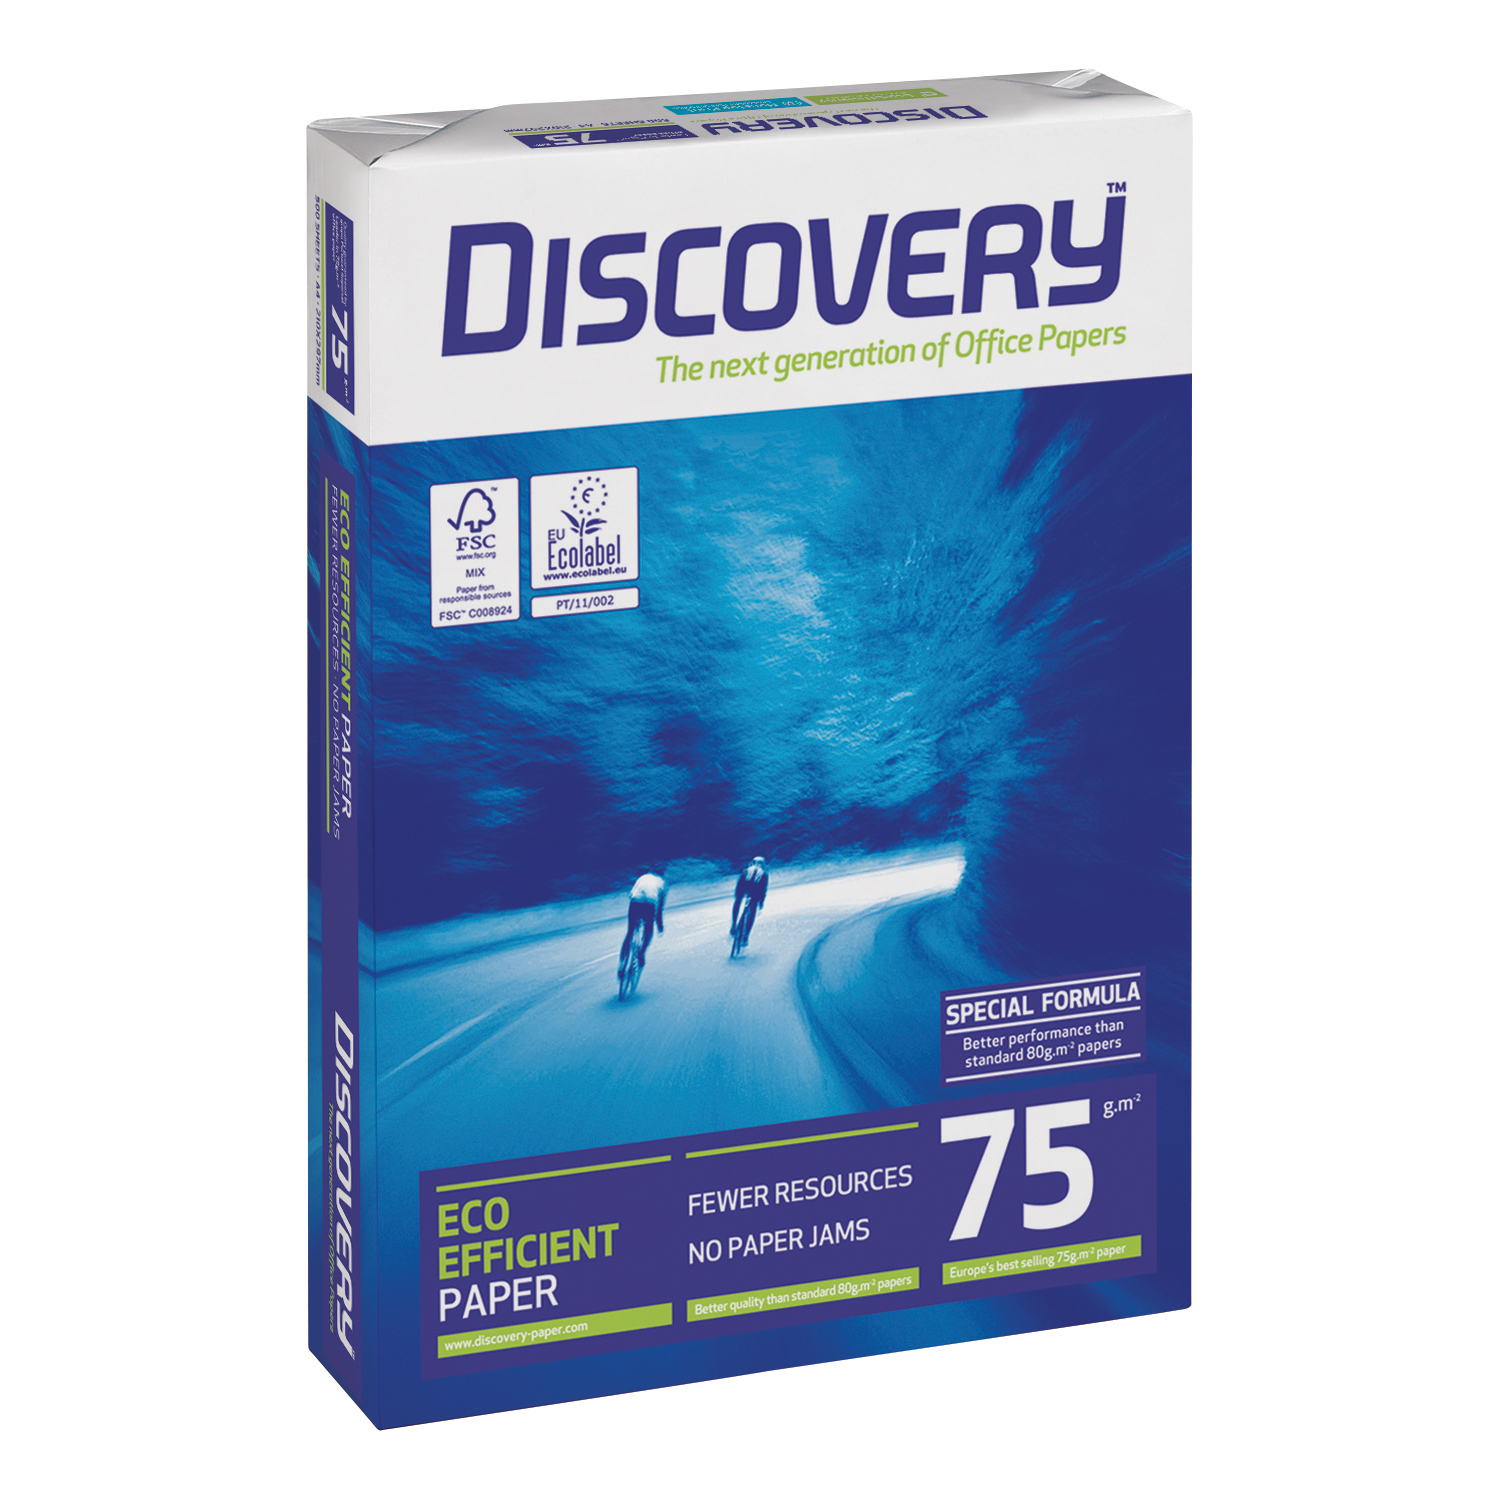 Discovery Everyday Paper FSC 5x Ream-wrapped Pks 75gsm A4 White Ref DIS0750073 2500 Sheets